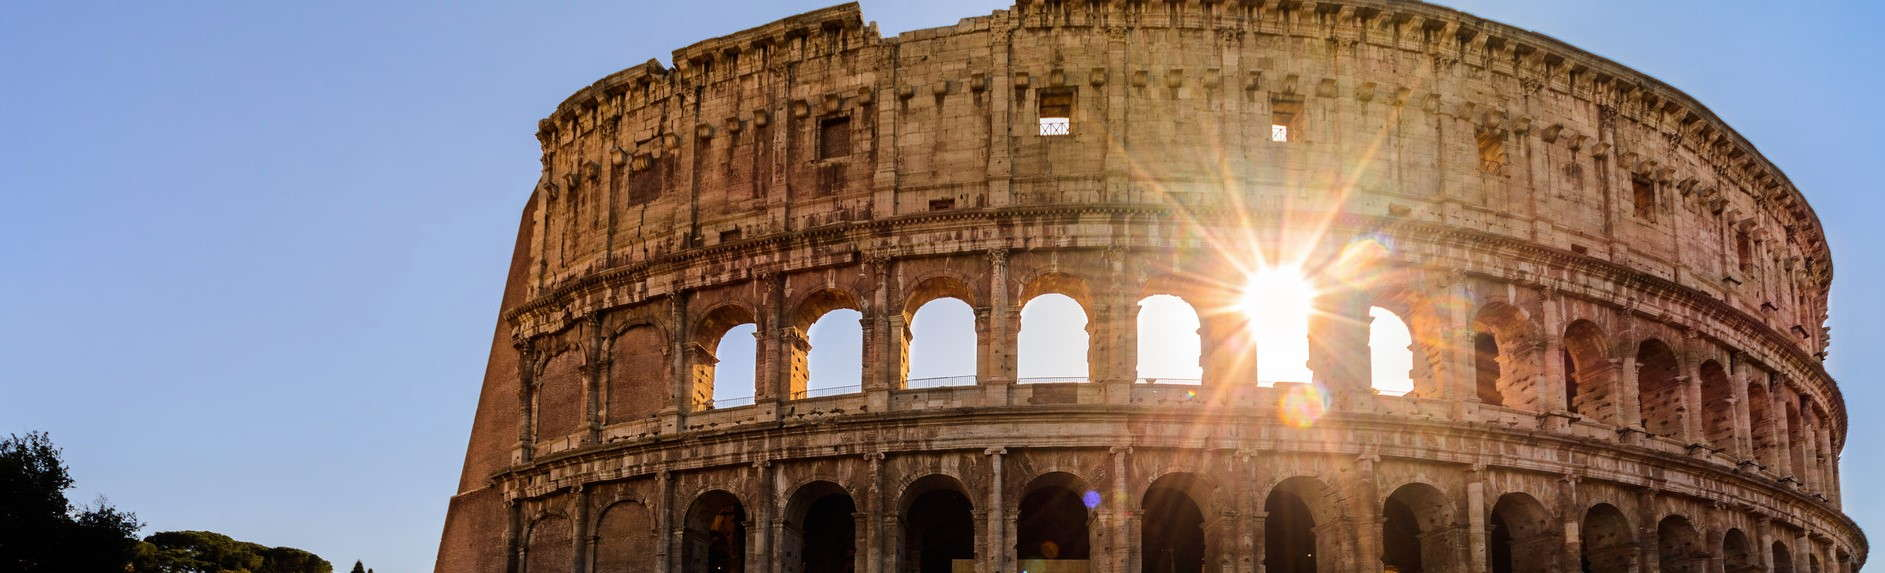 Our Best Tours Around Rome Are Available Now